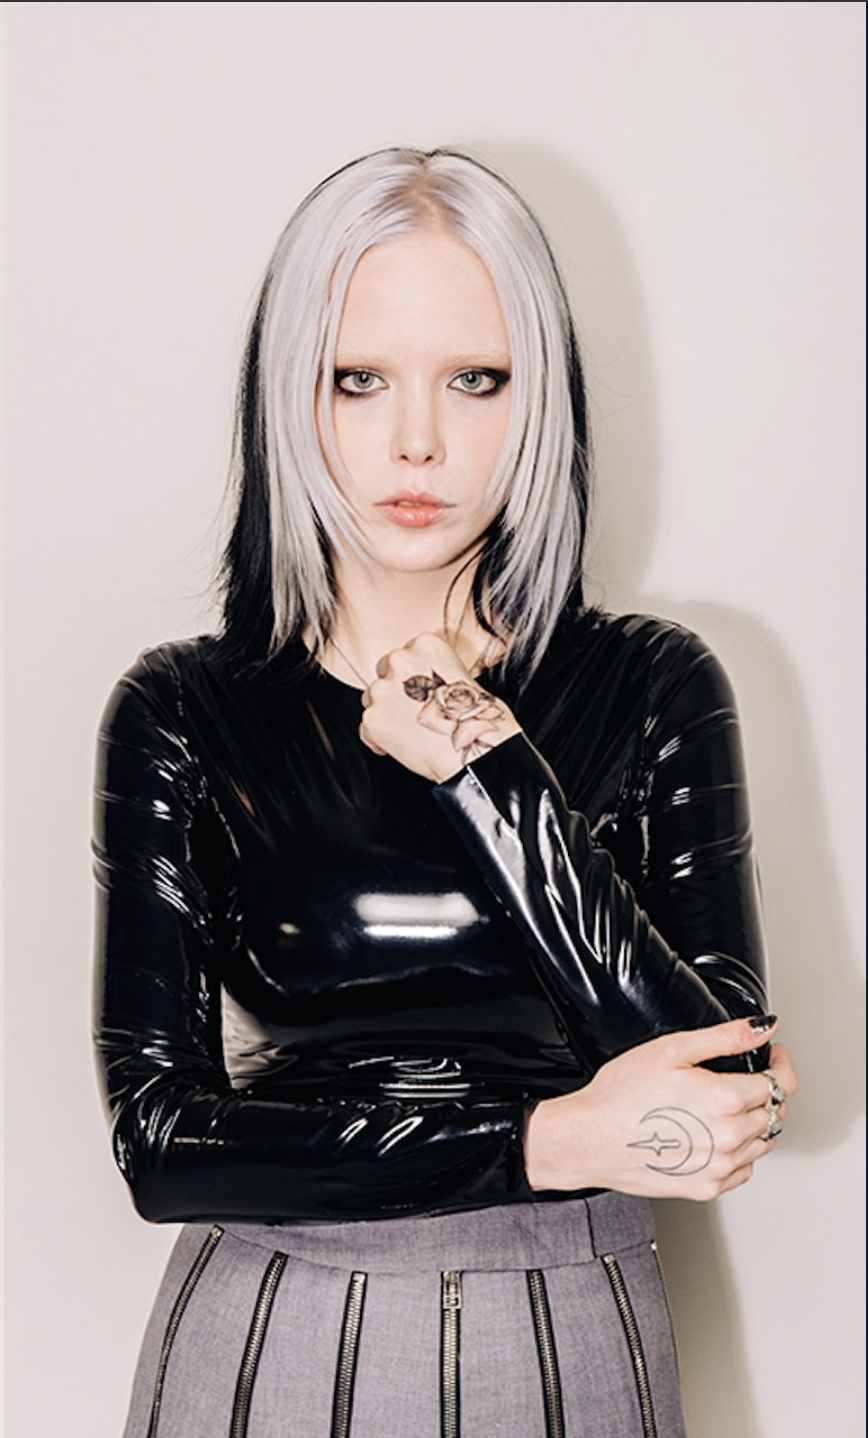 alice-glass-showering-naked-girls-galleries